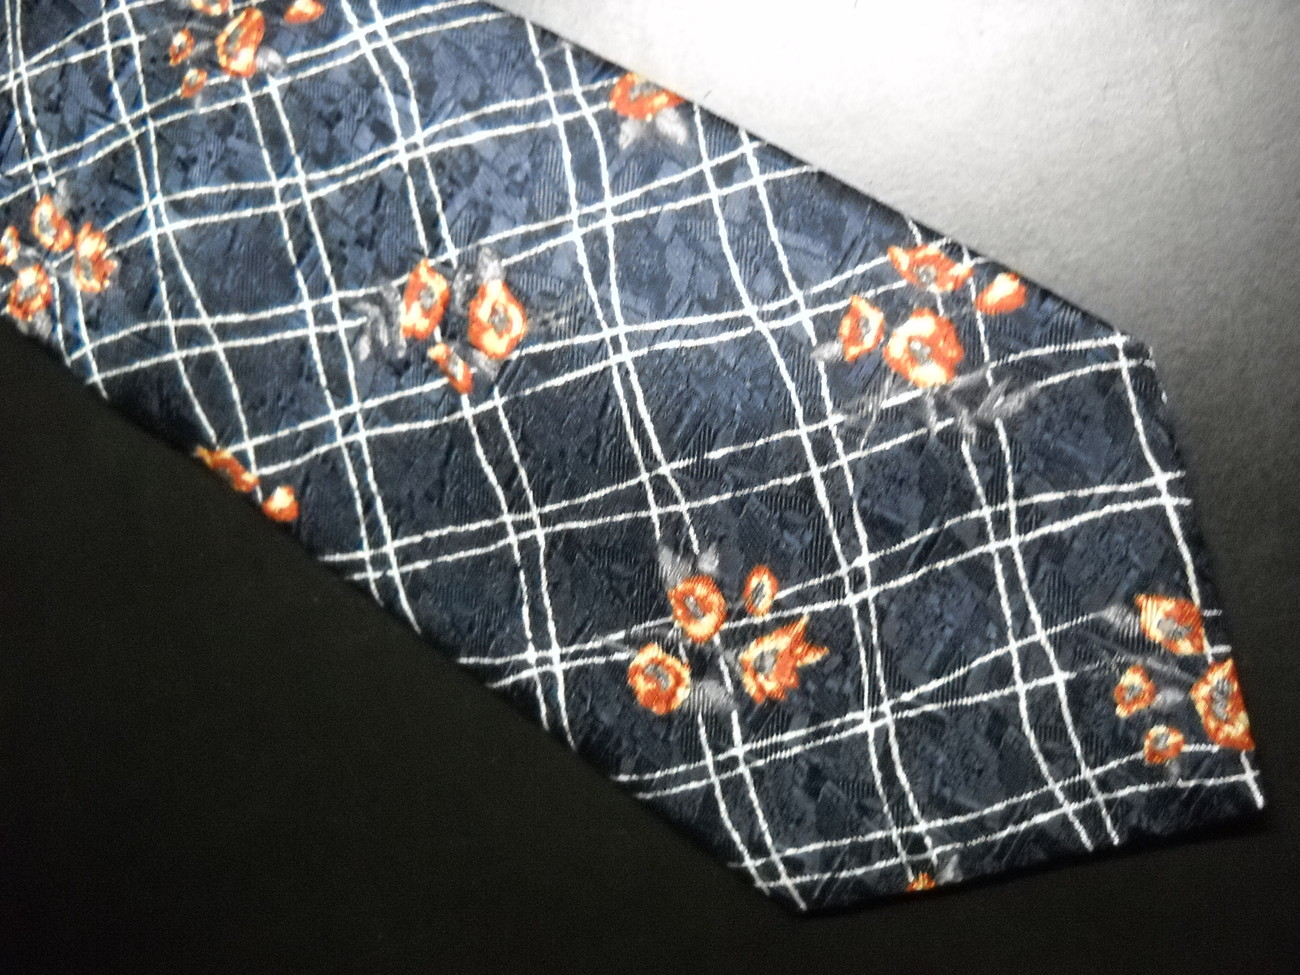 Structure Dress Neck Tie Dark Blue Background with Latticework Blooms Golds Reds